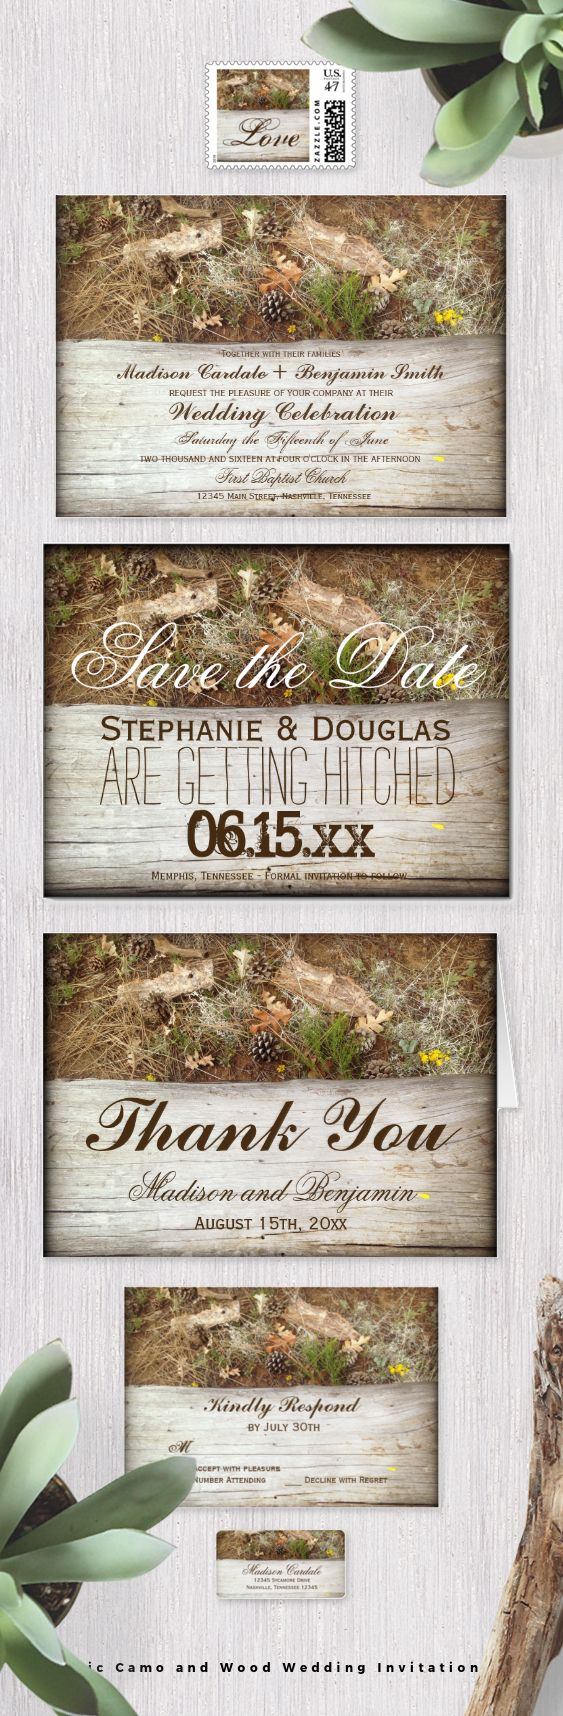 Rustic Country Camo and Wood Wedding Invitation Set for a hunting theme or nature theme wedding.  #camowedding